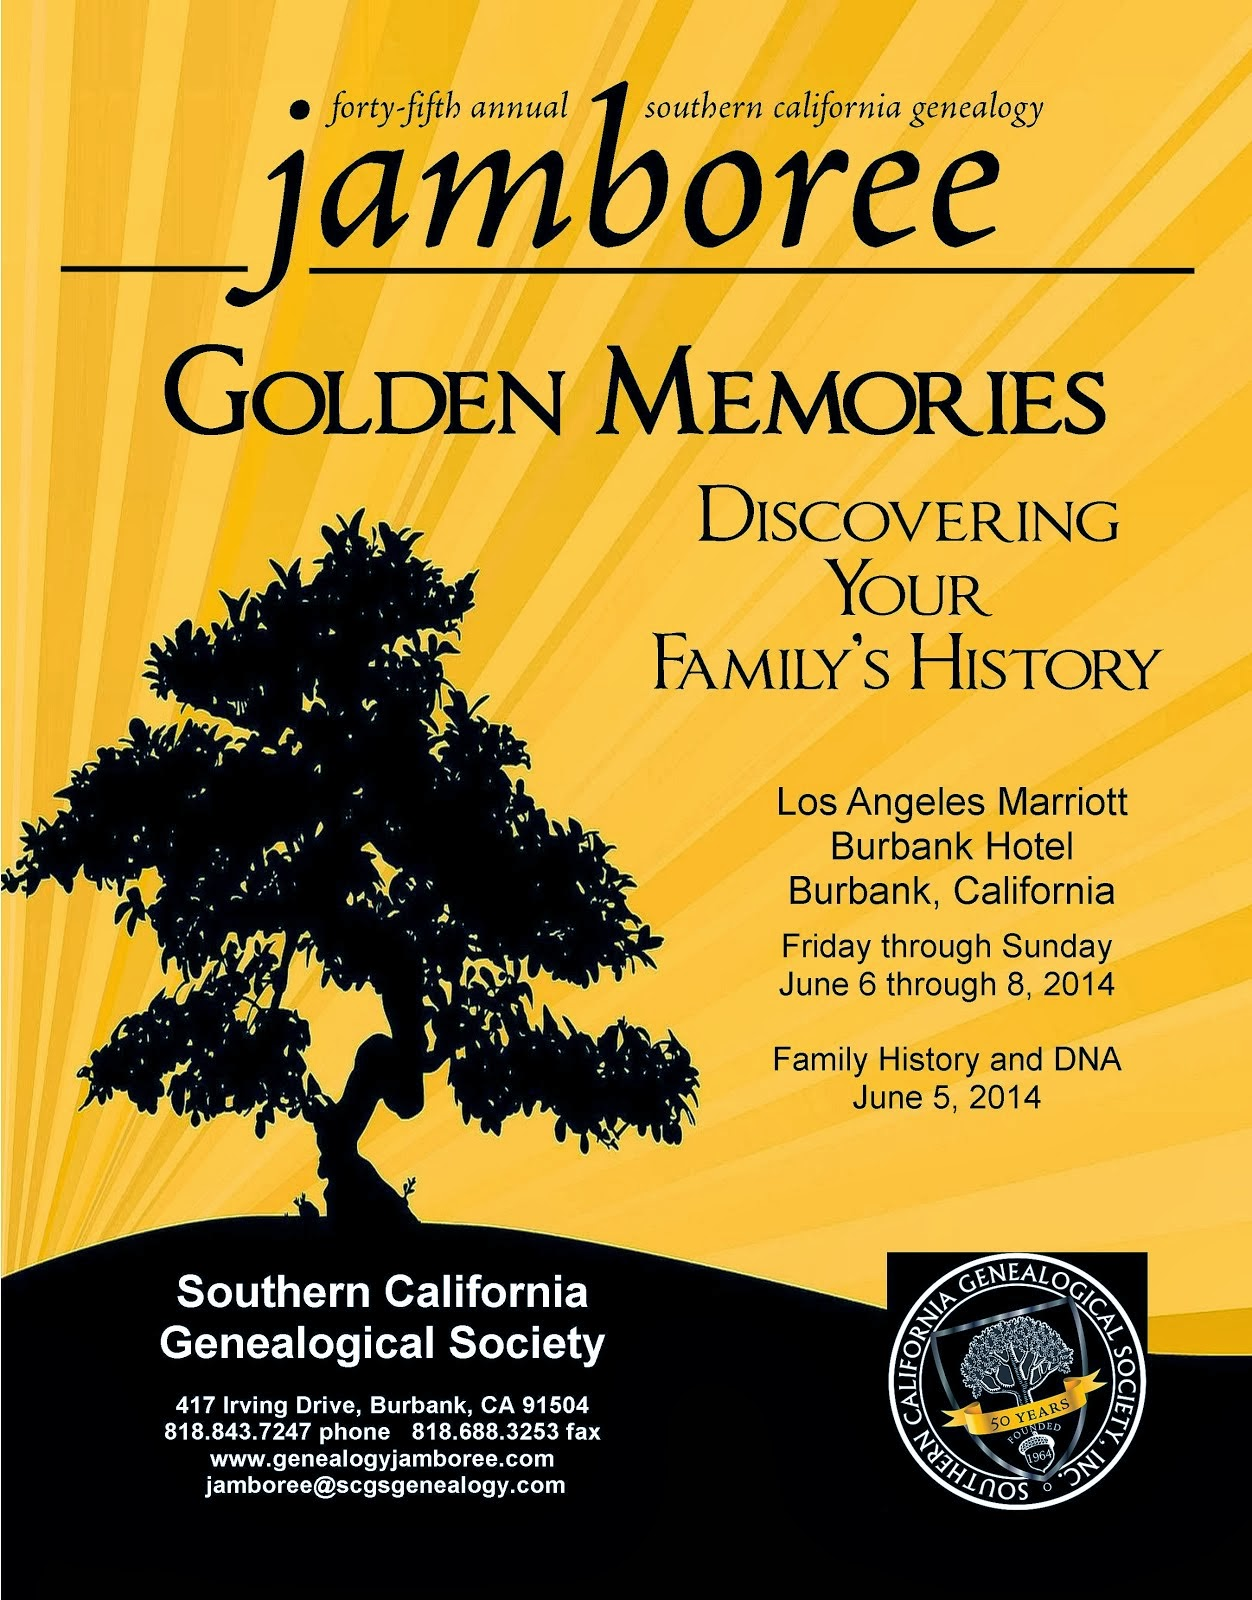 2014 Southern California Genealogy Jamboree - June 6-8, 2014